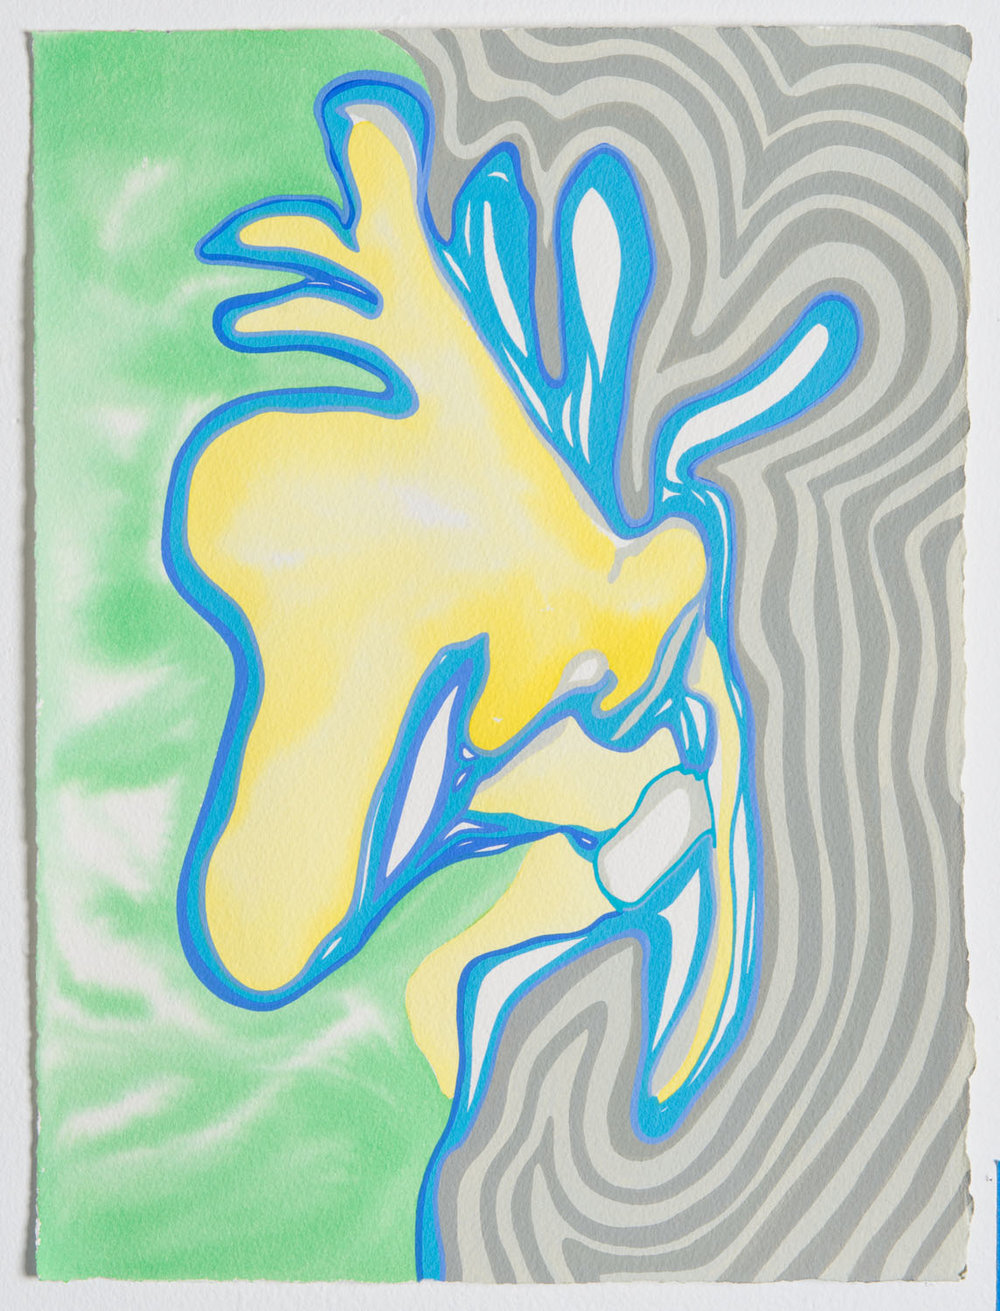 untitled w, 2017 15 x 11 1/2 inches gouache on paper 100-123